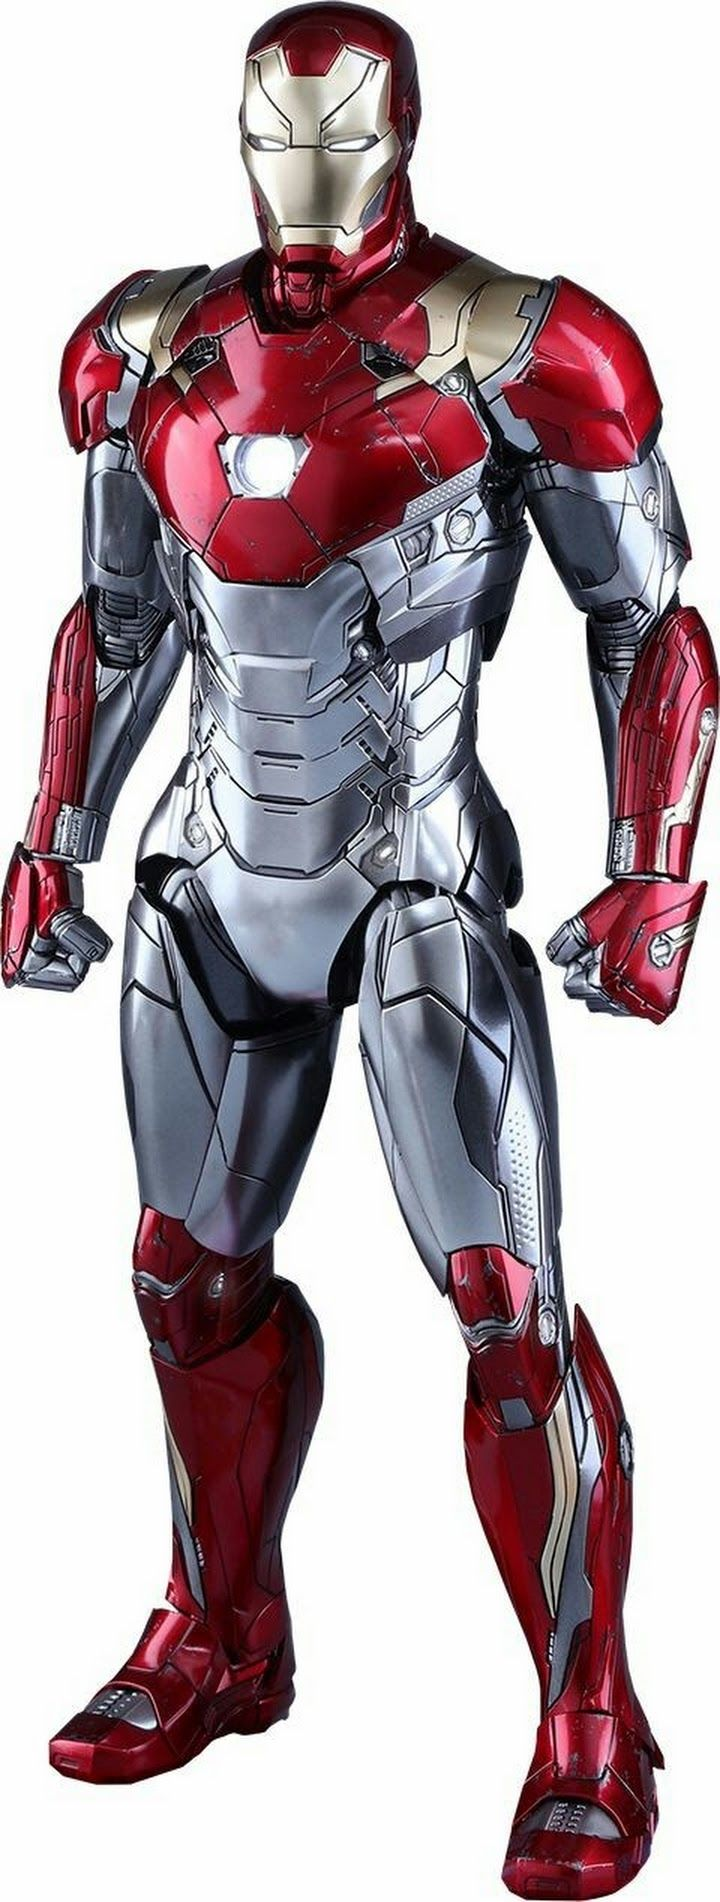 191 Best Work Images On Pinterest Body Armor Marvel Heroes And Crystal Radio Circuit Diagram Also Iron Man Tony Stark Puter Besides Spiderman Homecomingthis Replica Figure Looks Incredible